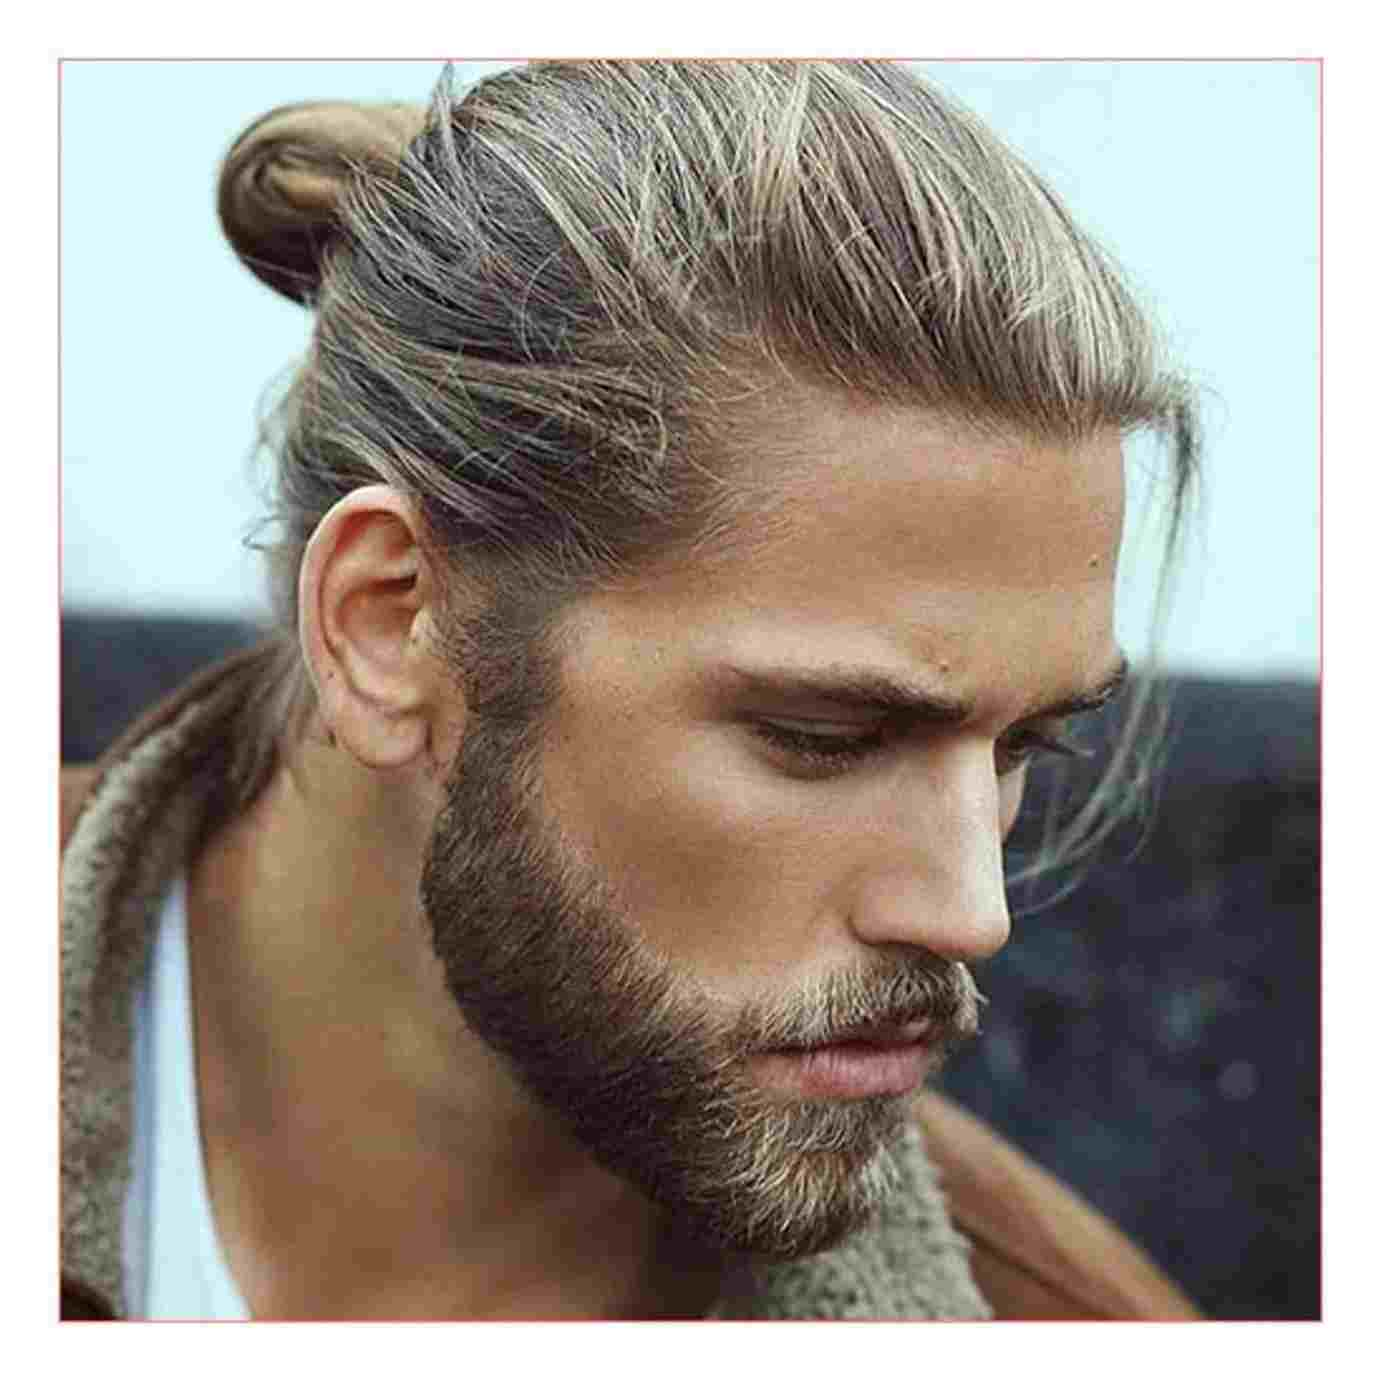 101 Hairstyle Names List 2021 (Trending Hairstyle Names With Photos)